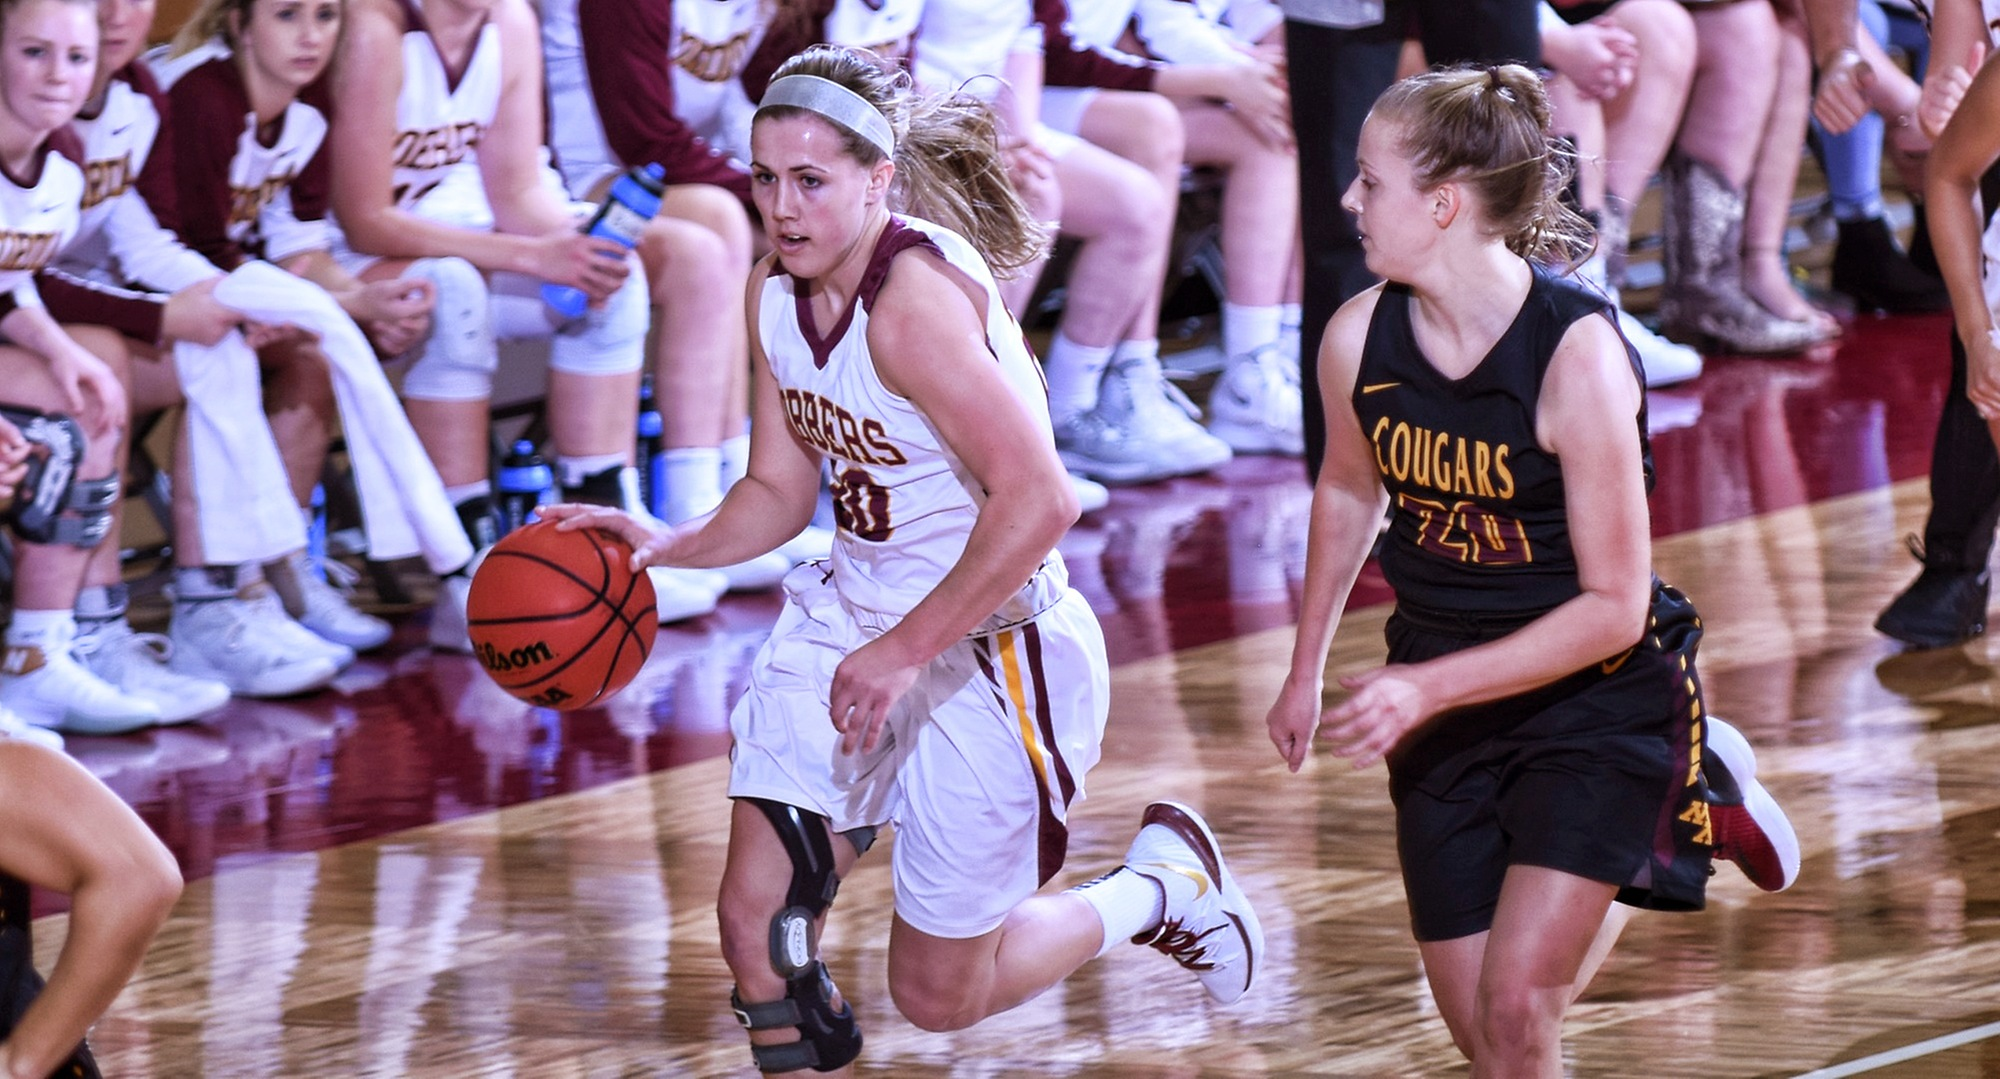 Freshman Emily Beseman brings the ball up the court against a Minn.-Morris defender during the Cobbers' 78-63 win. Beseman finished with 23 points in her college debut.